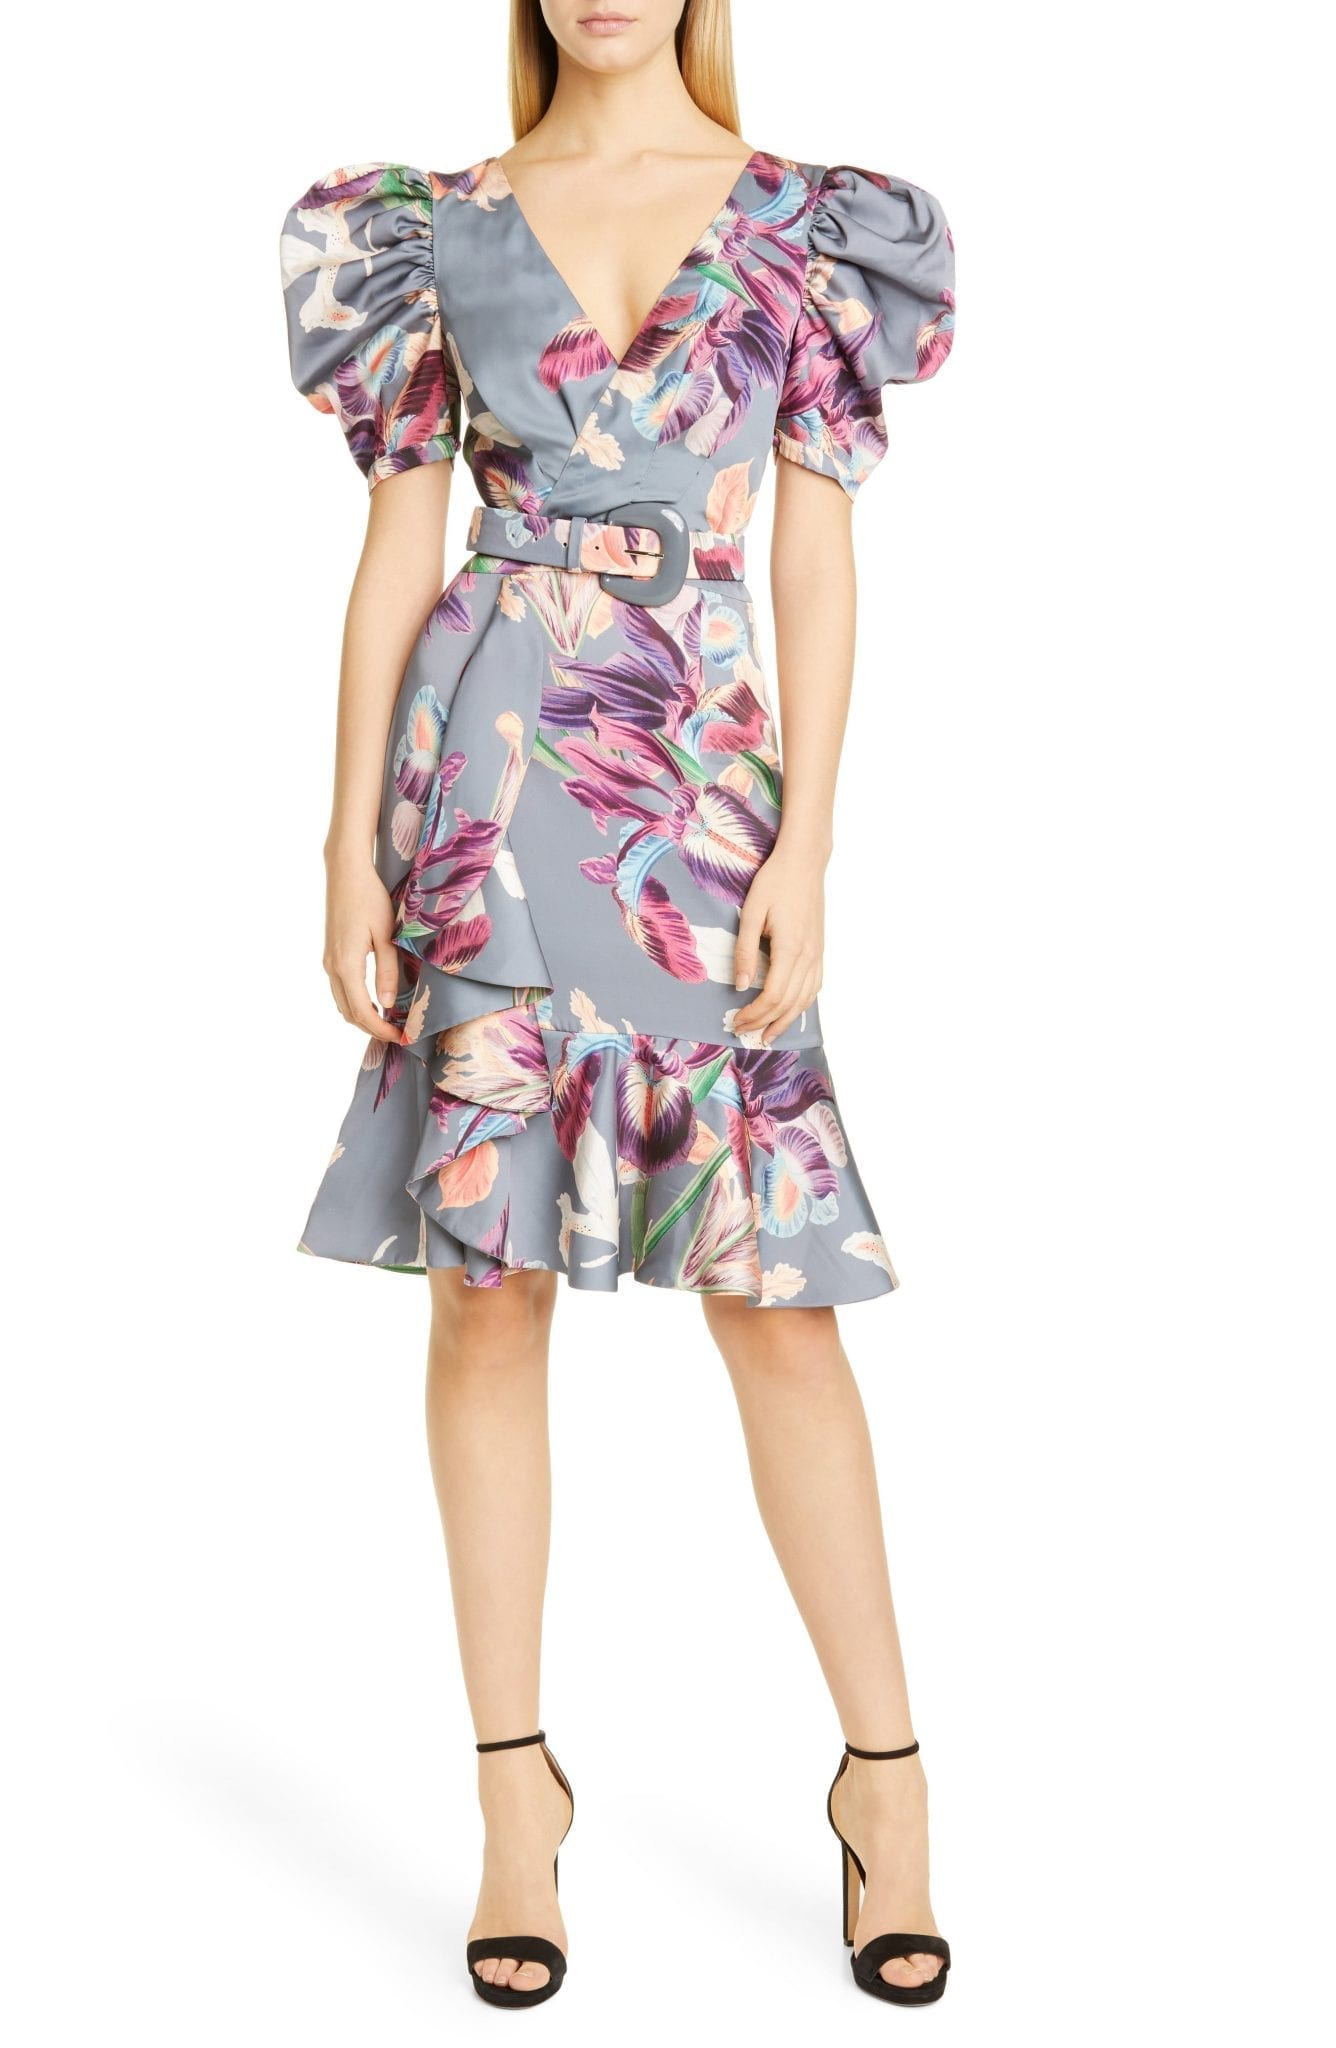 PATBO PATRICIA BONALDI PatBO Grace Puff Sleeve Belted Cocktail Dress